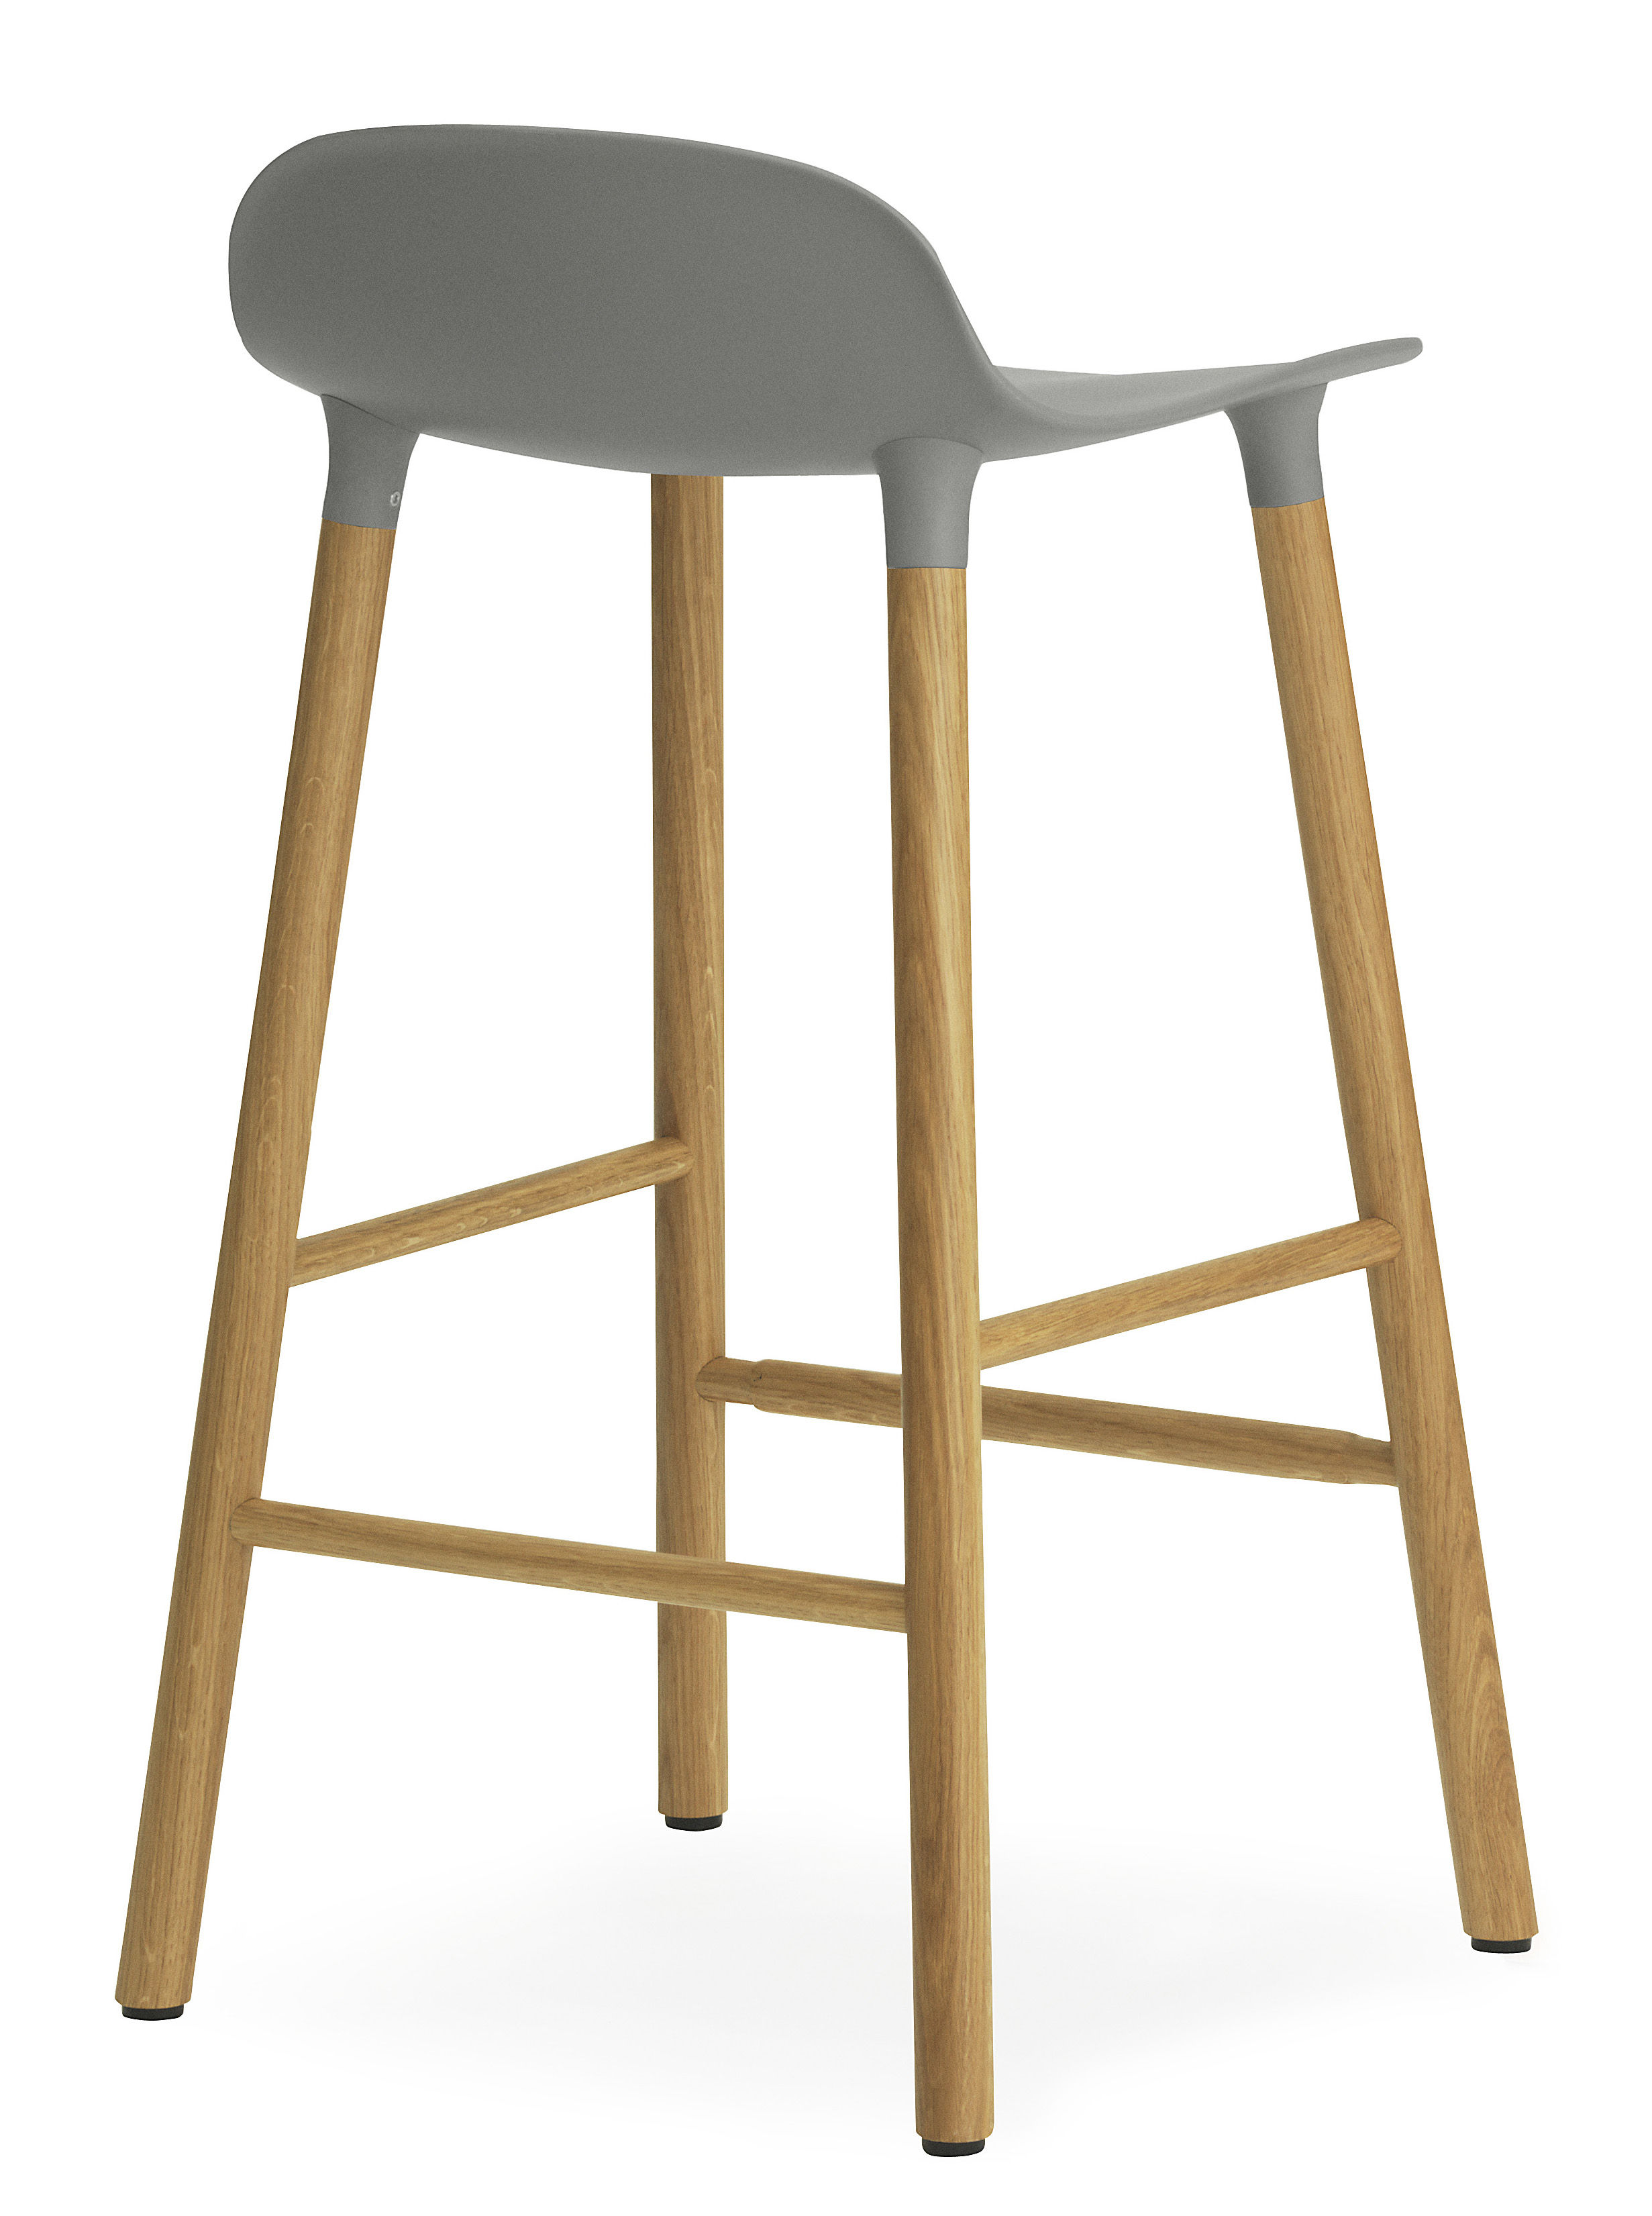 tabouret de bar form h 65 cm pied ch ne gris ch ne normann copenhagen. Black Bedroom Furniture Sets. Home Design Ideas